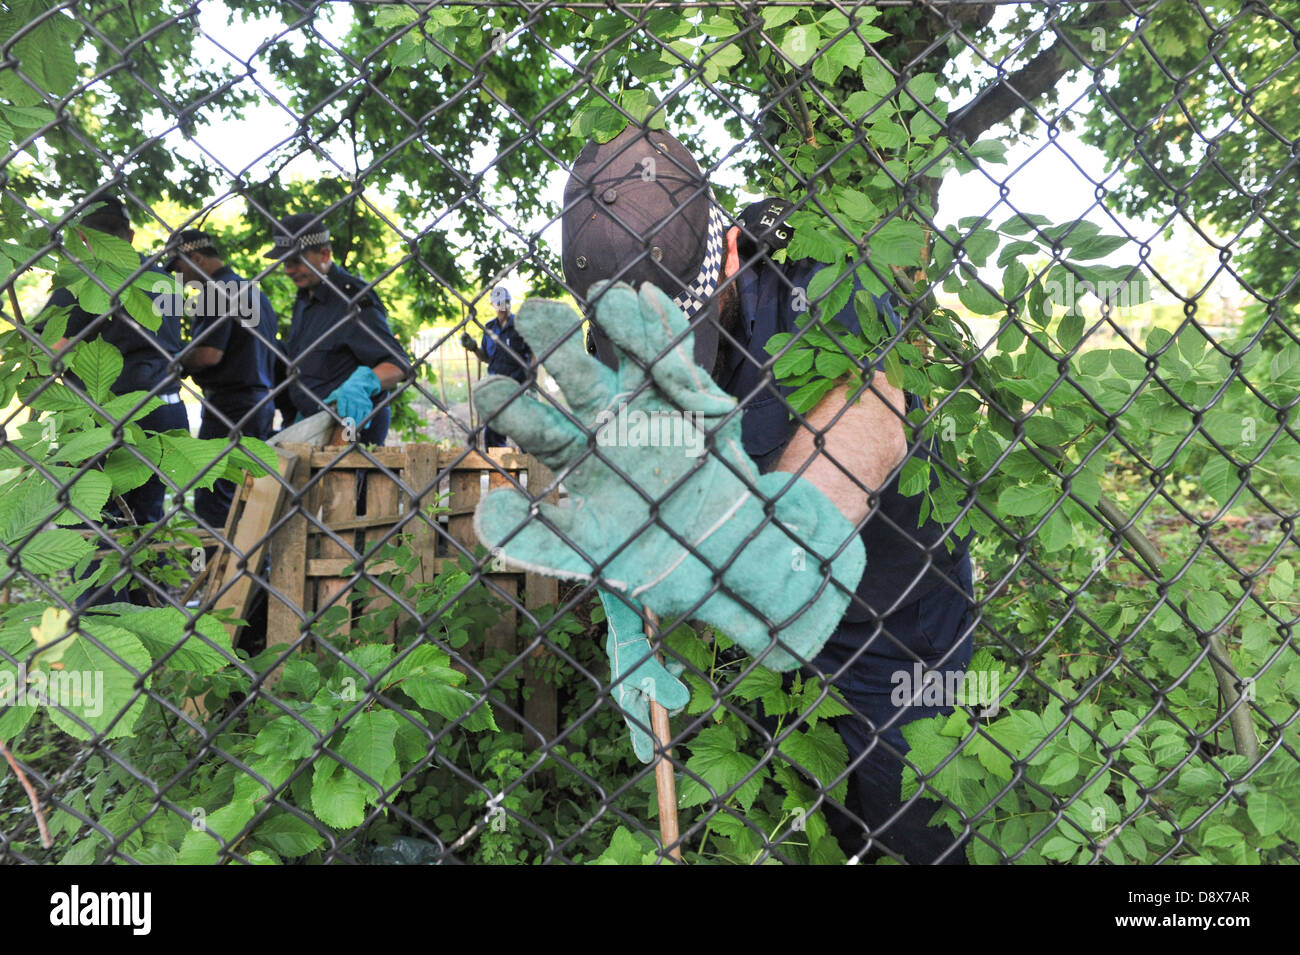 Muswell Hill, London, UK. 5th June 2013. Police officers conduct a search of allottments near the attacked community - Stock Image